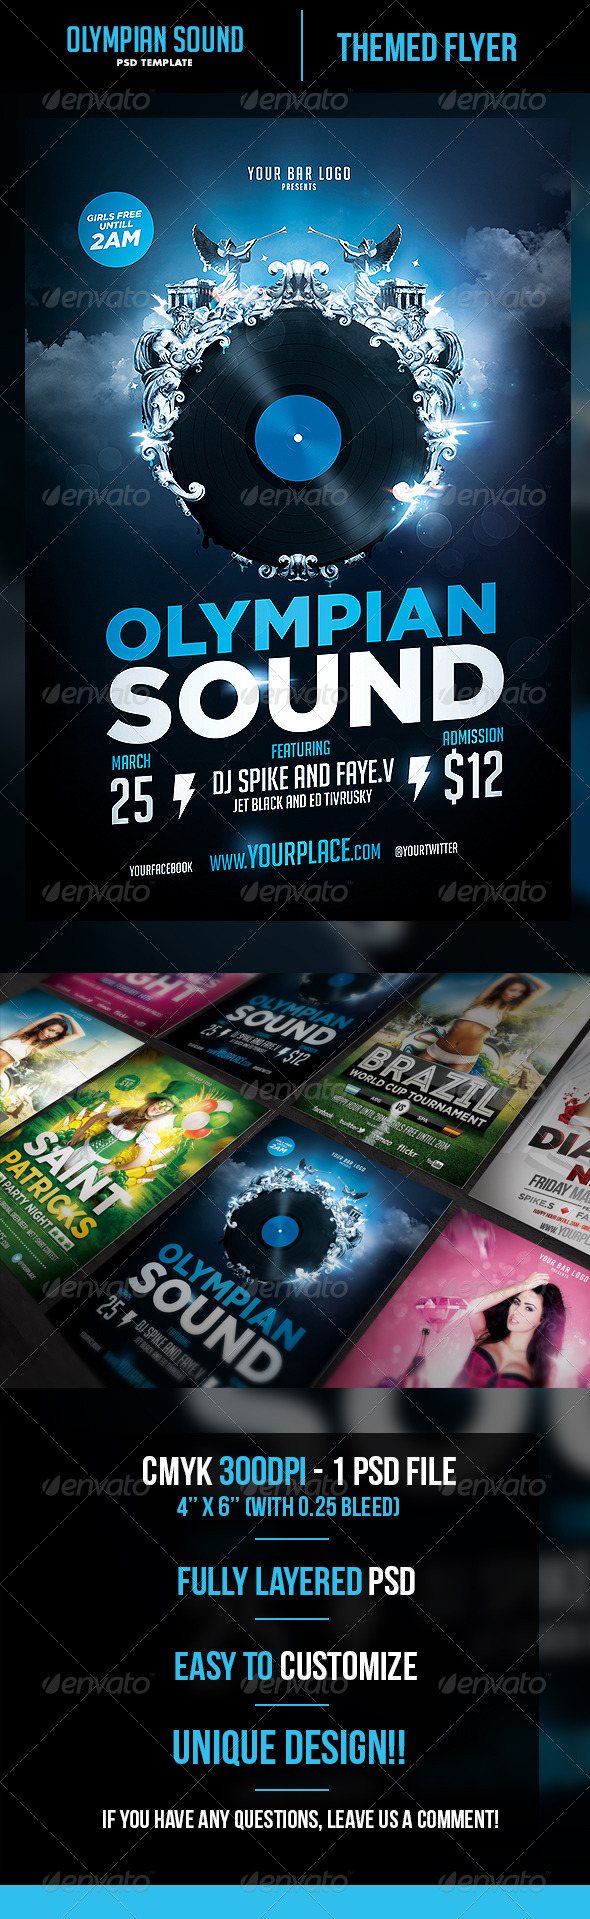 Olympian Sound Flyer Template - Flyers Print Templates